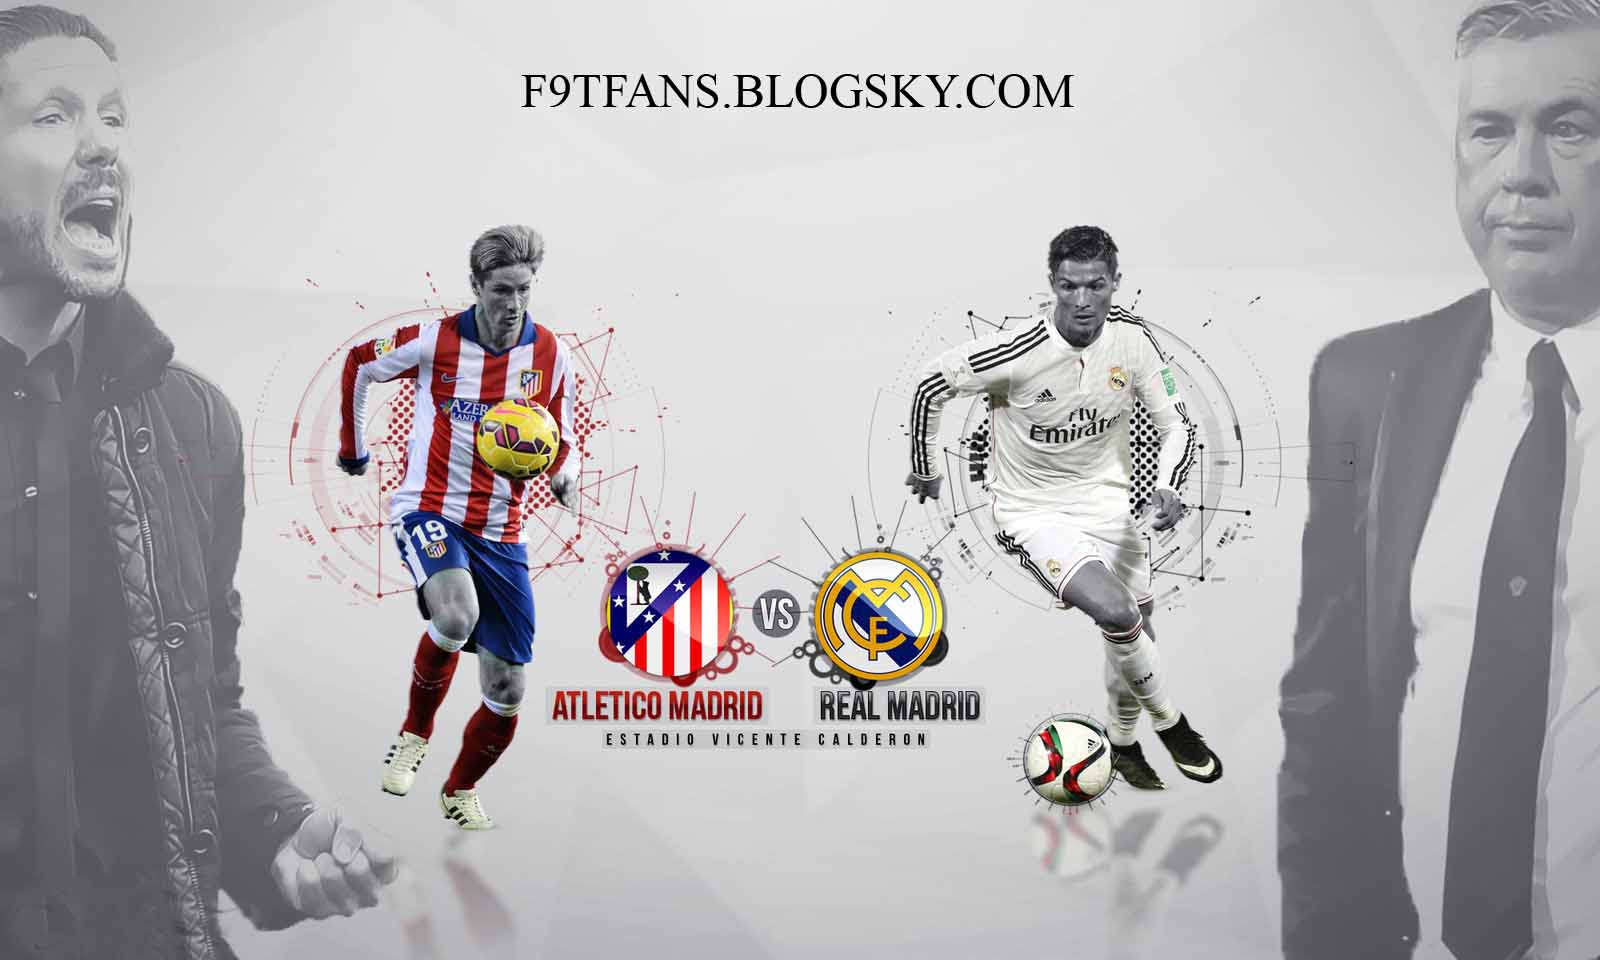 http://s4.picofile.com/file/8183643318/Real_Madrid_VS_Atletico_Madrid_F9TFANS_BLOGSKY.jpg